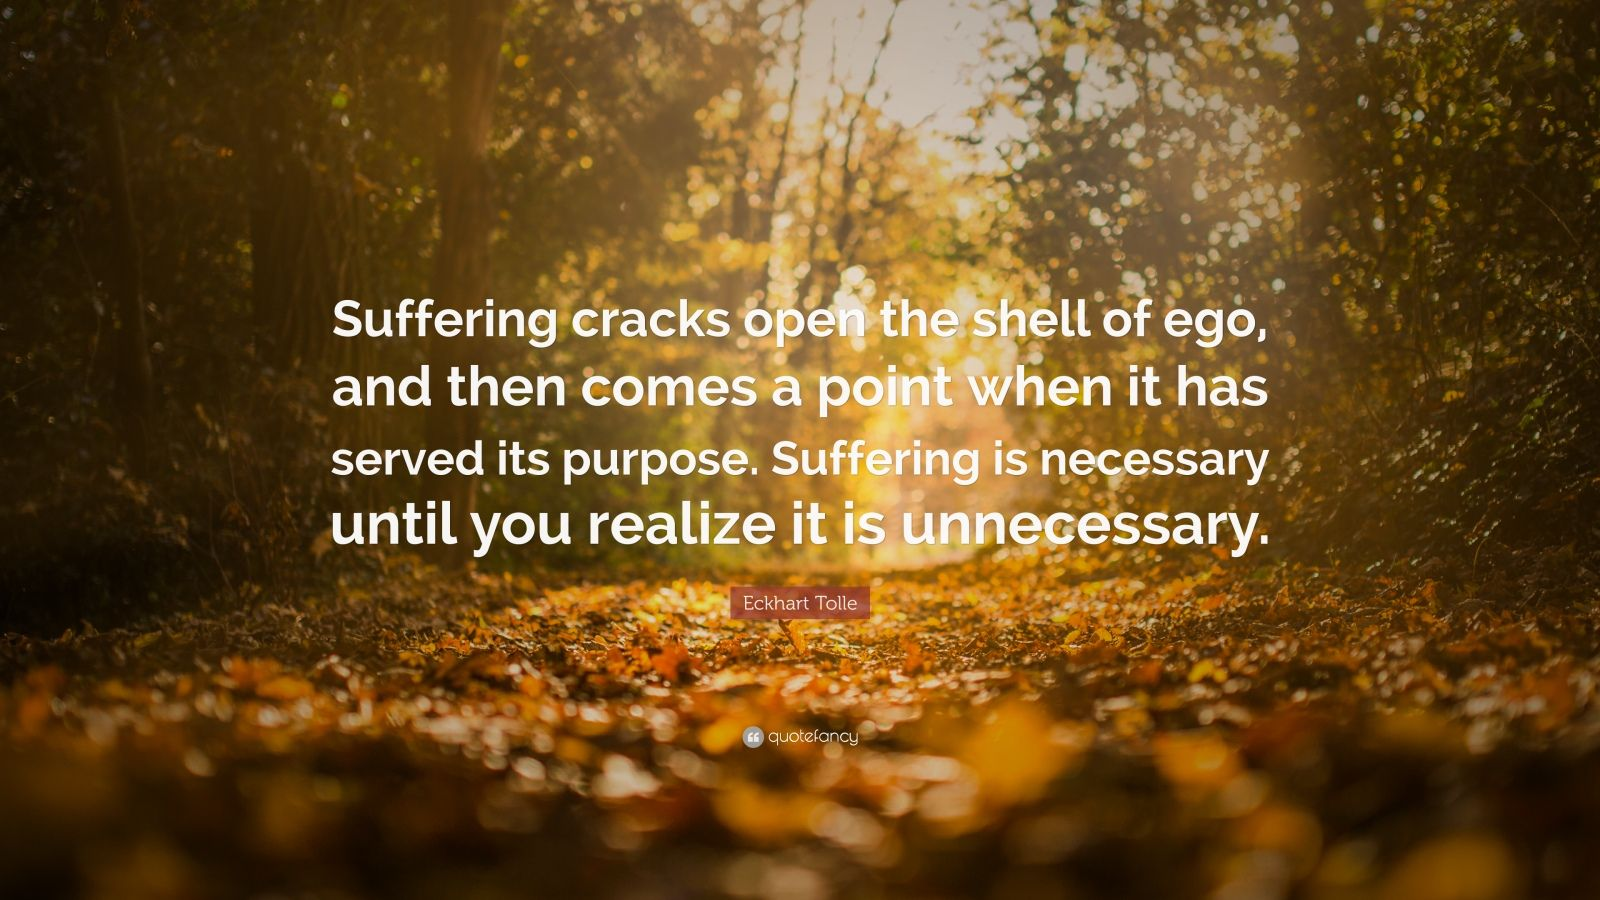 """Eckhart Tolle Quote: """"Suffering cracks open the shell of ego, and then comes a point when it has served its purpose. Suffering is necessary until you realize it is unnecessary."""""""